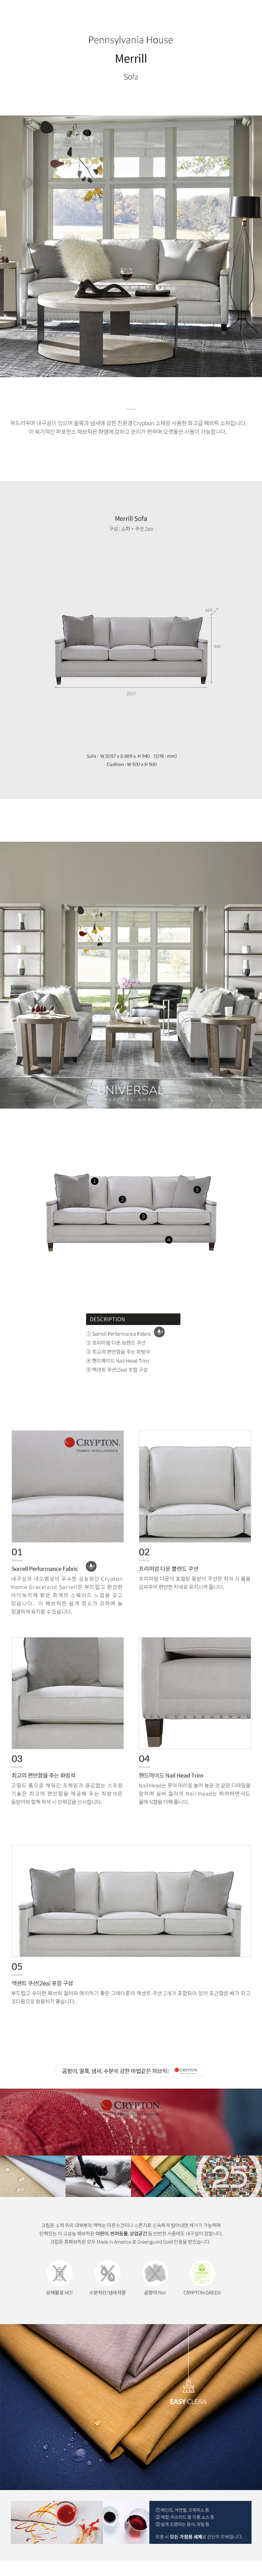 Merrill-Sofa_add-1.jpg